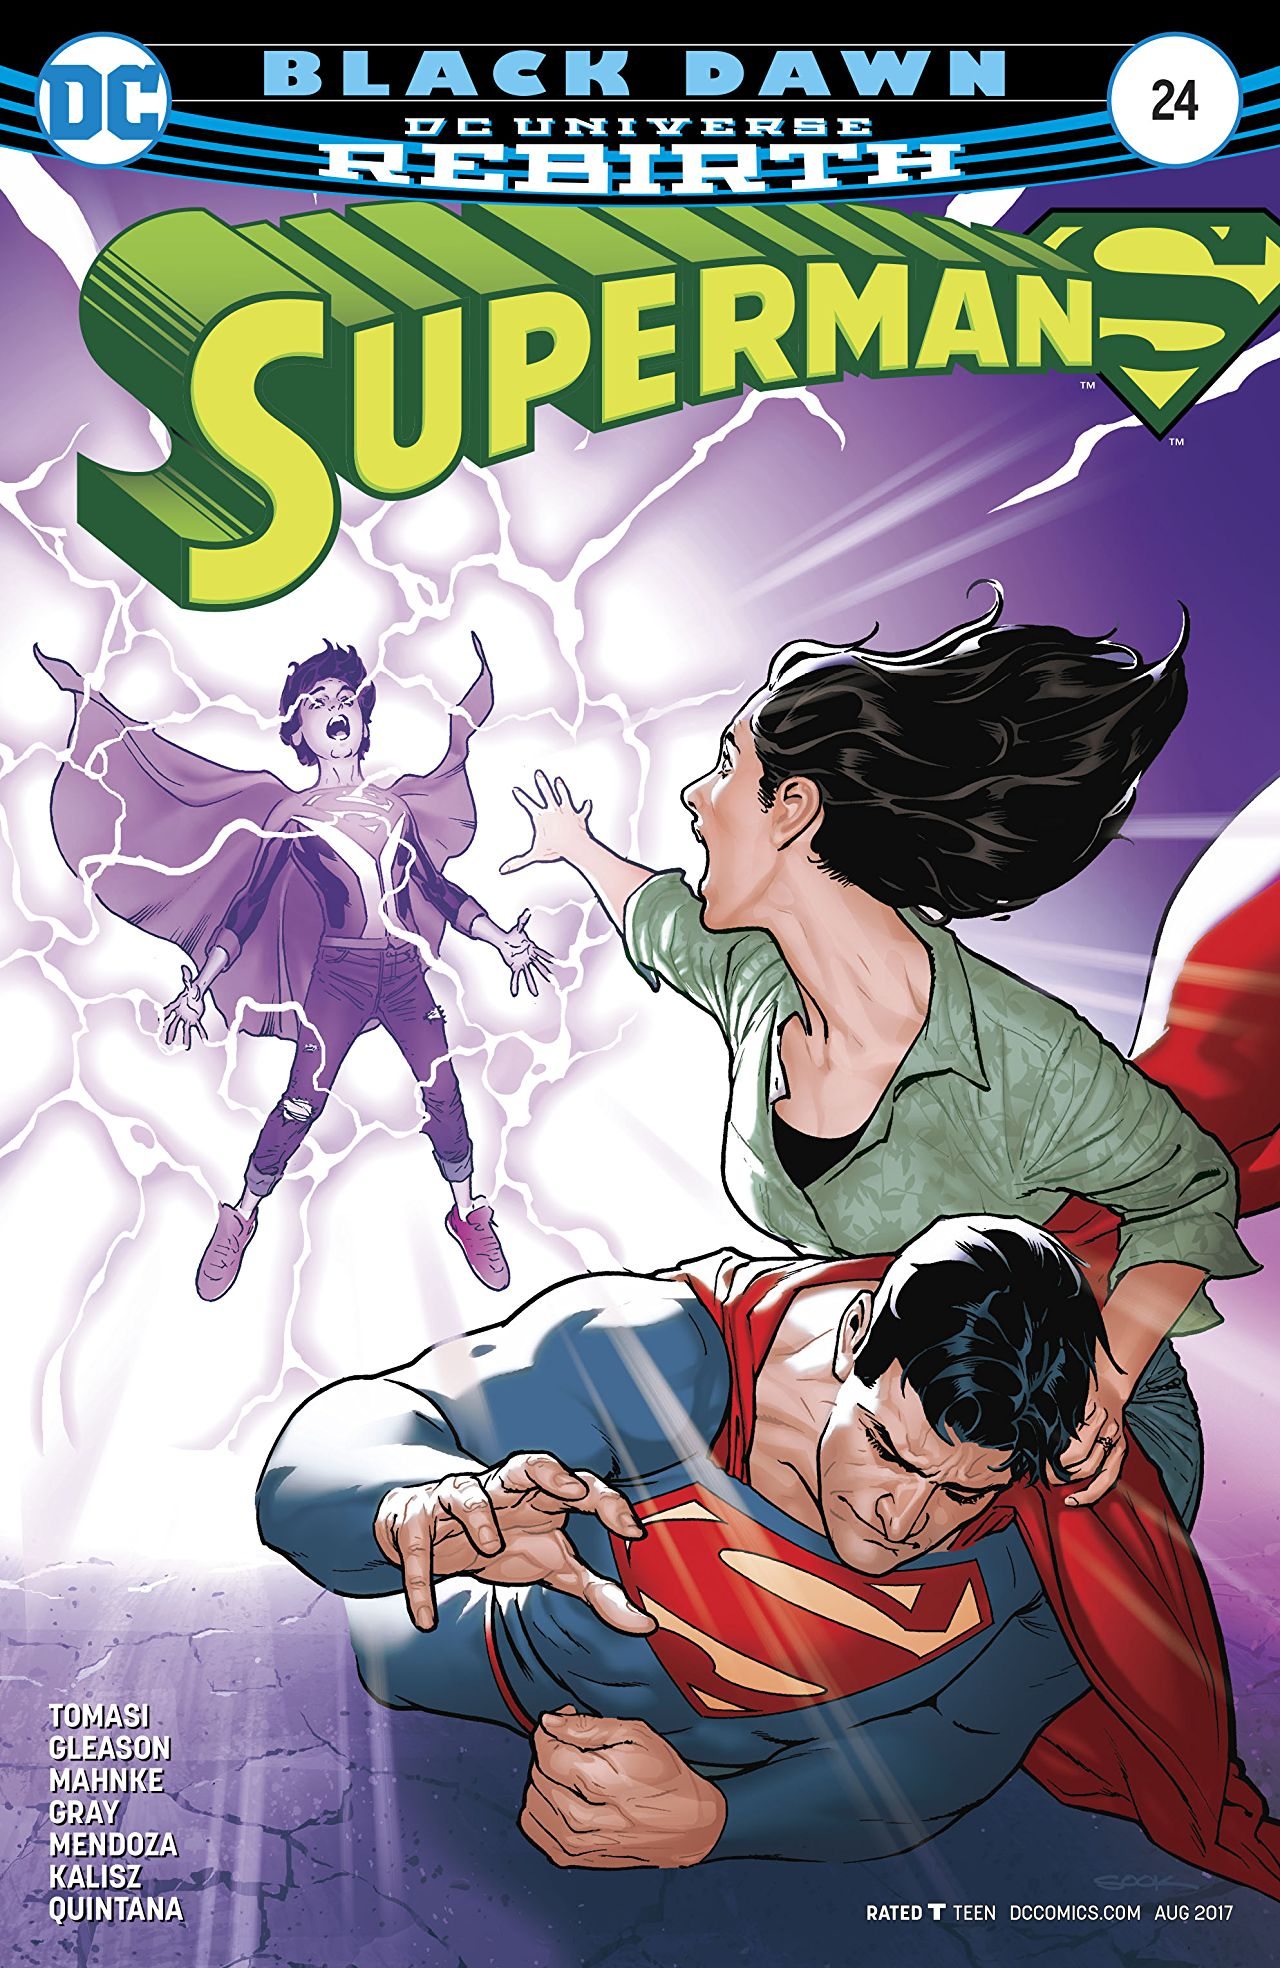 review SUPERMAN #24